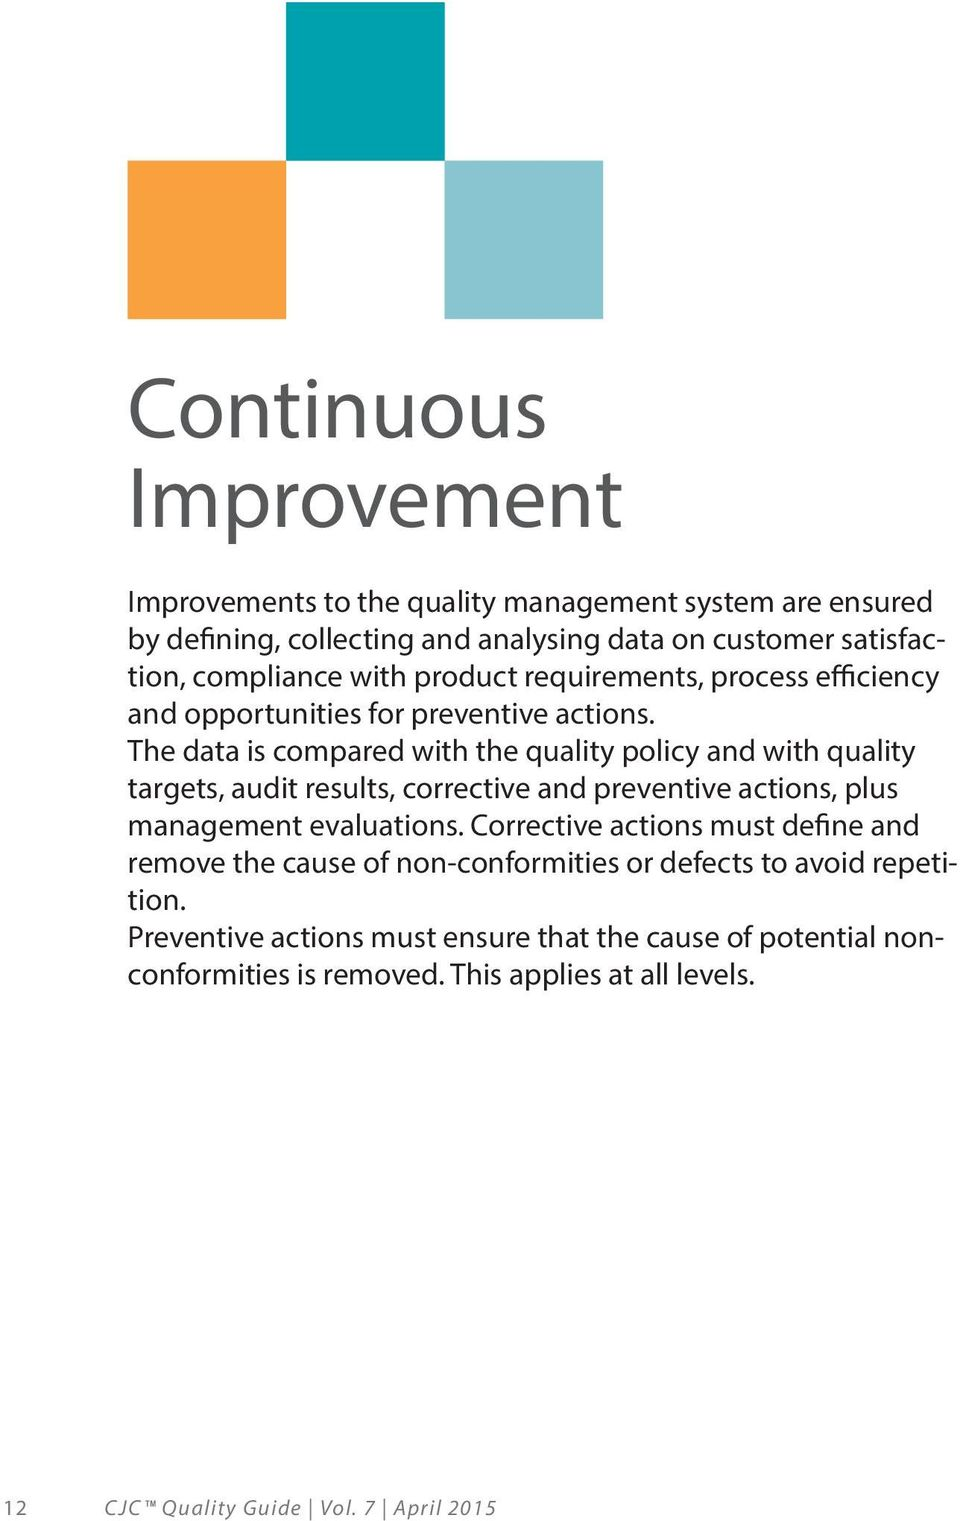 The data is compared with the quality policy and with quality targets, audit results, corrective and preventive actions, plus management evaluations.